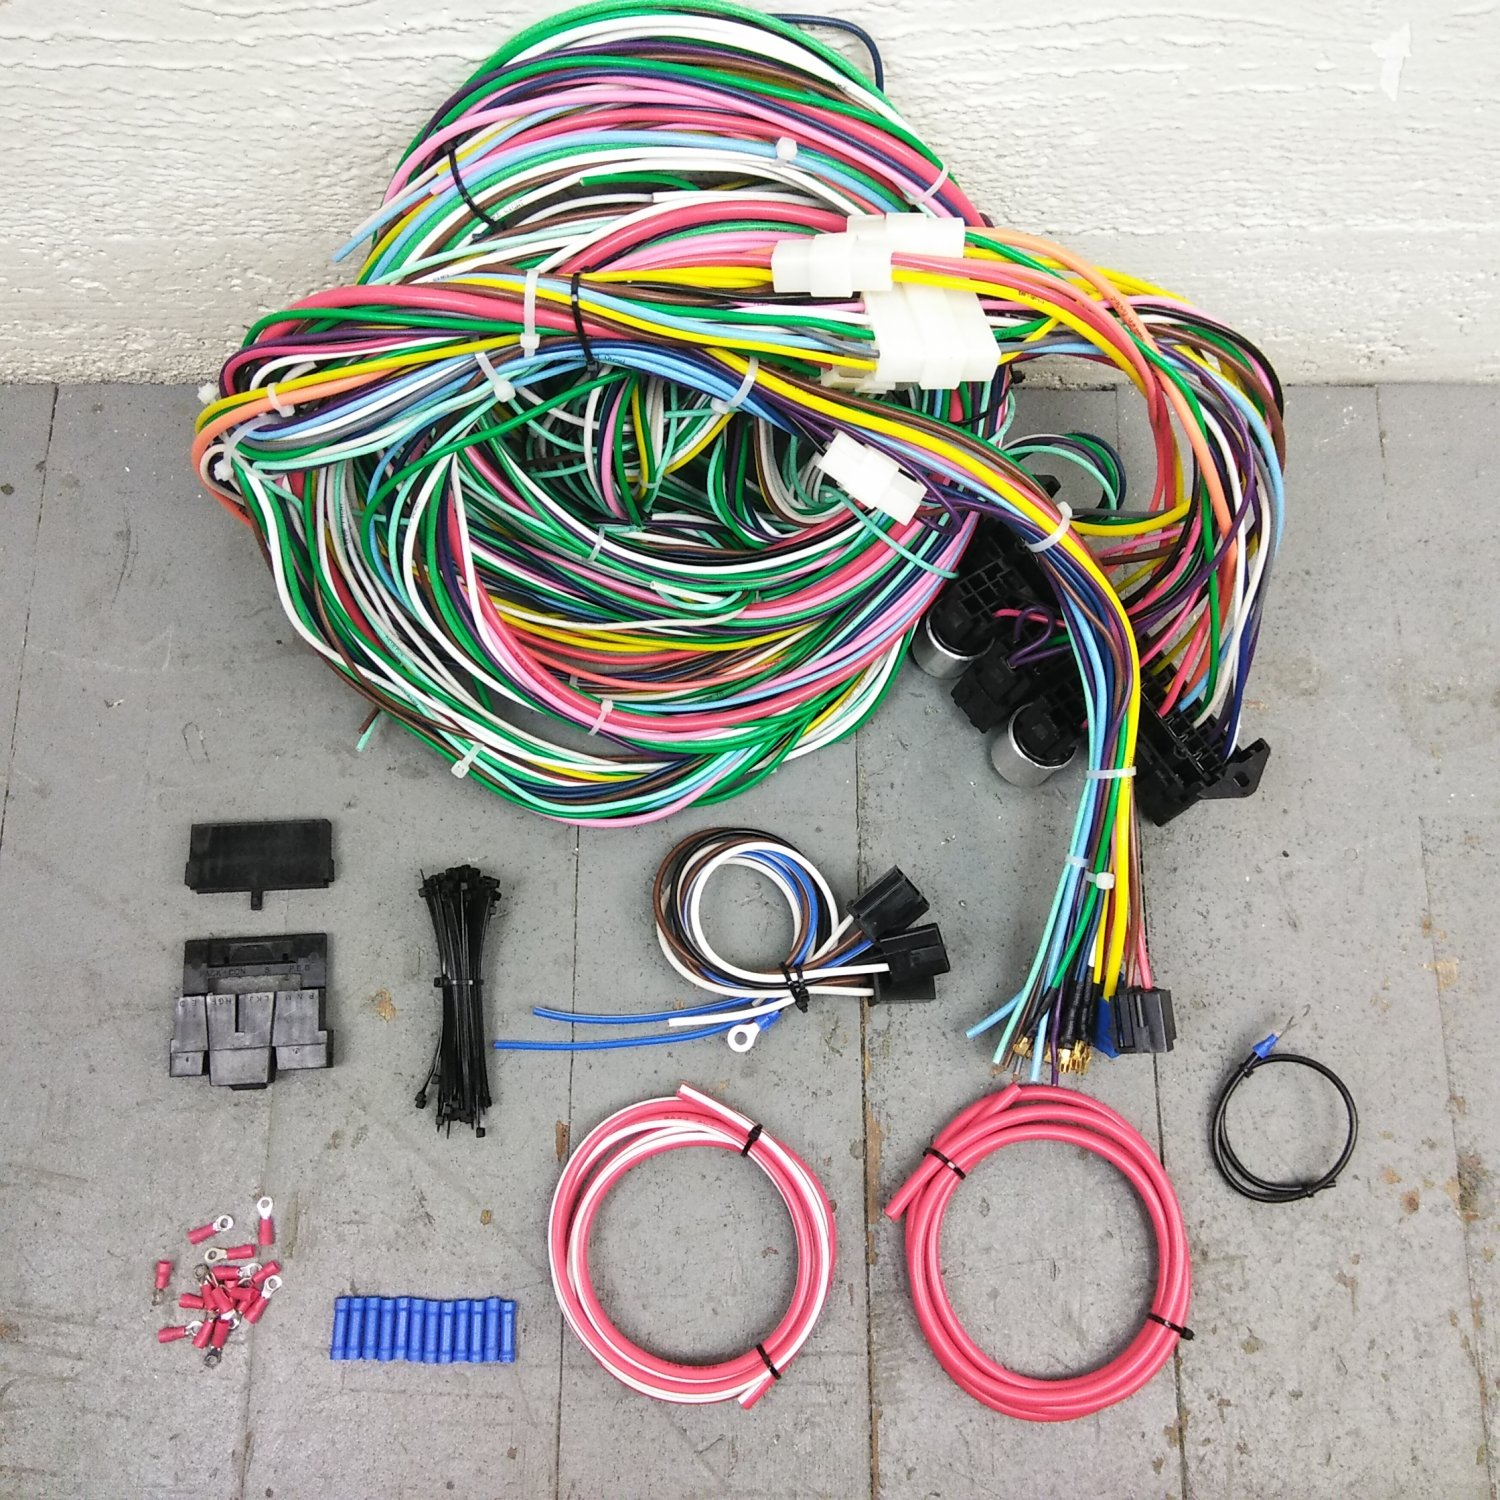 1949 - 1962 Ford Car Wire Harness Upgrade Kit fits painless new terminal  update. Bar_Product_Description_C